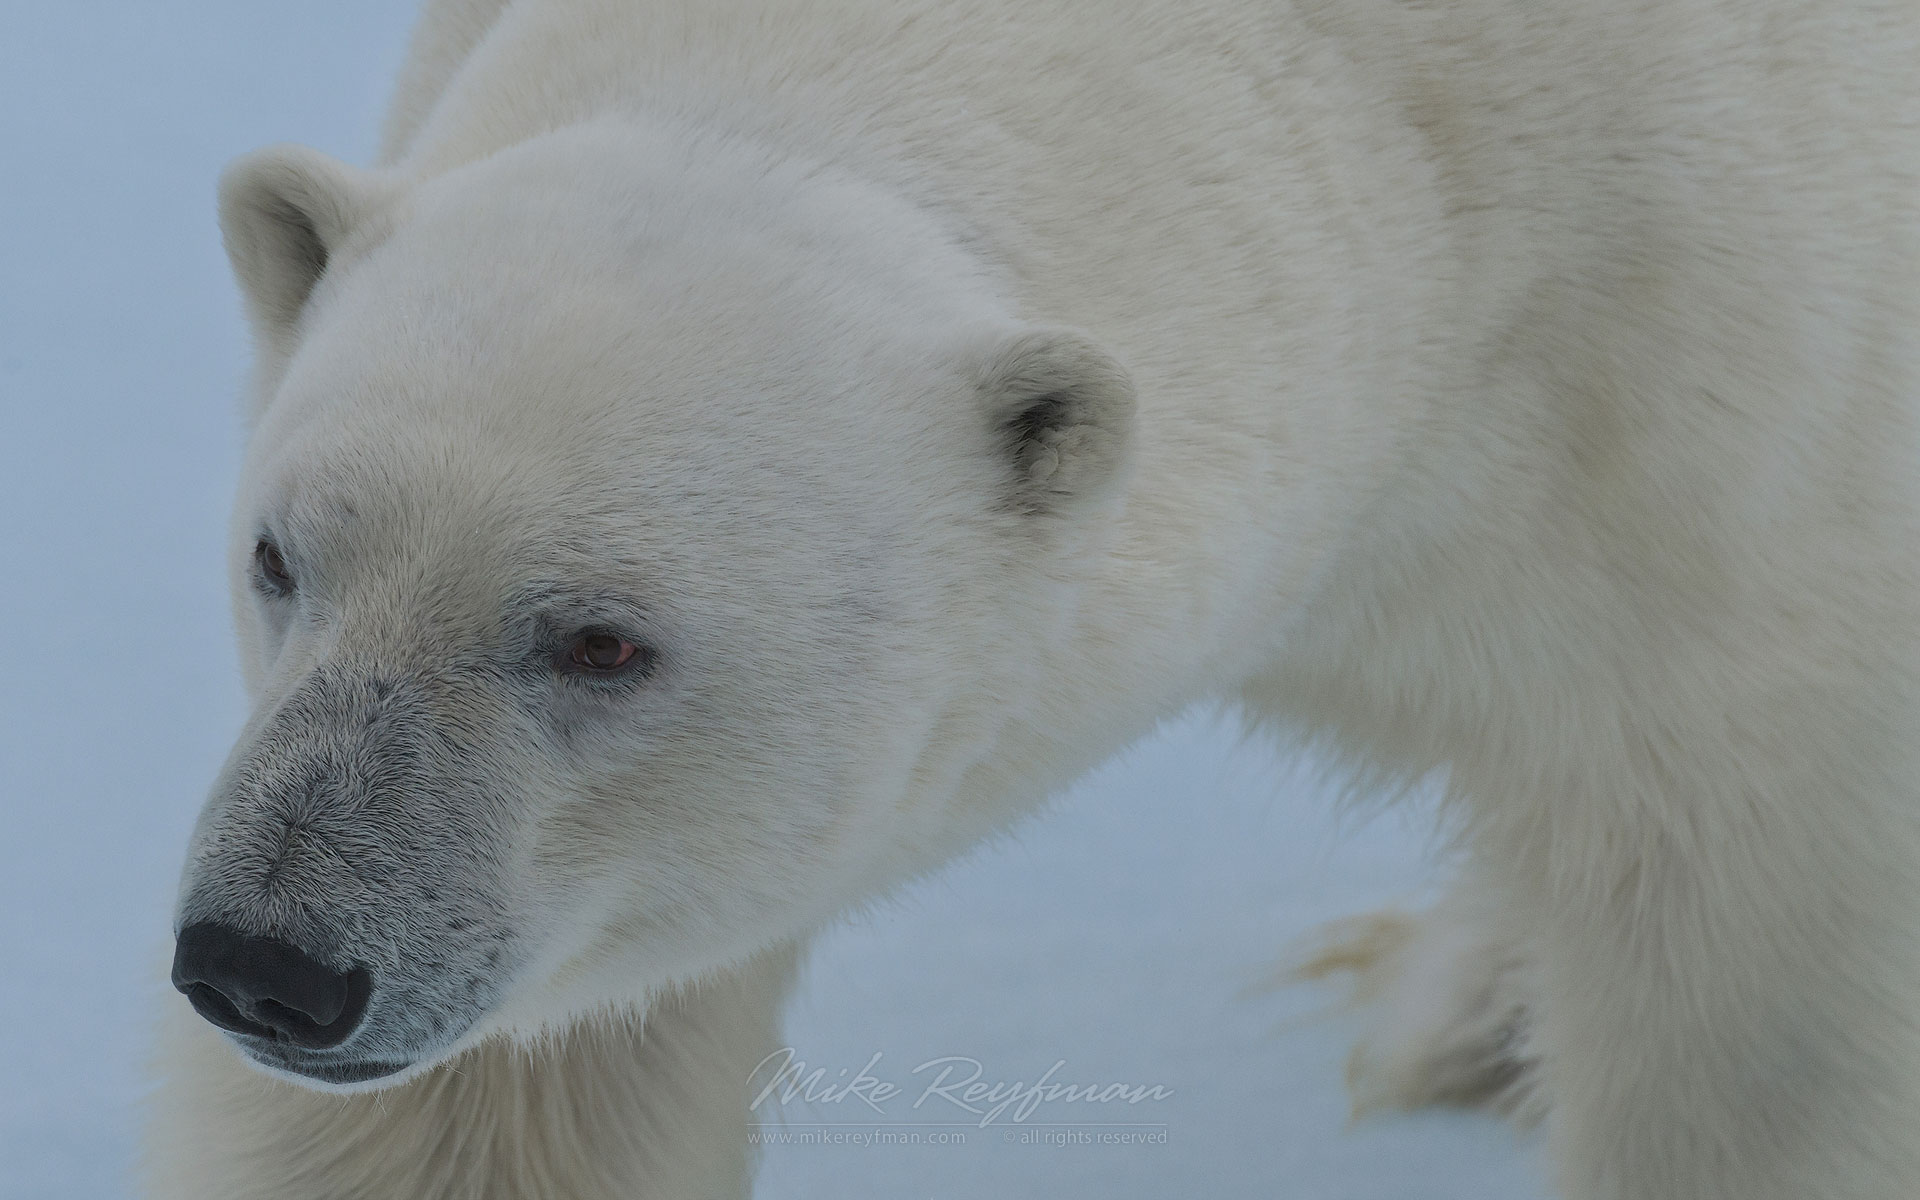 Hungry polar bear sniffing the air. Close-up portrait. Svalbard, Norway. 81st parallel North. - Polar-Bears-Svalbard-Spitsbergen-Norway - Mike Reyfman Photography